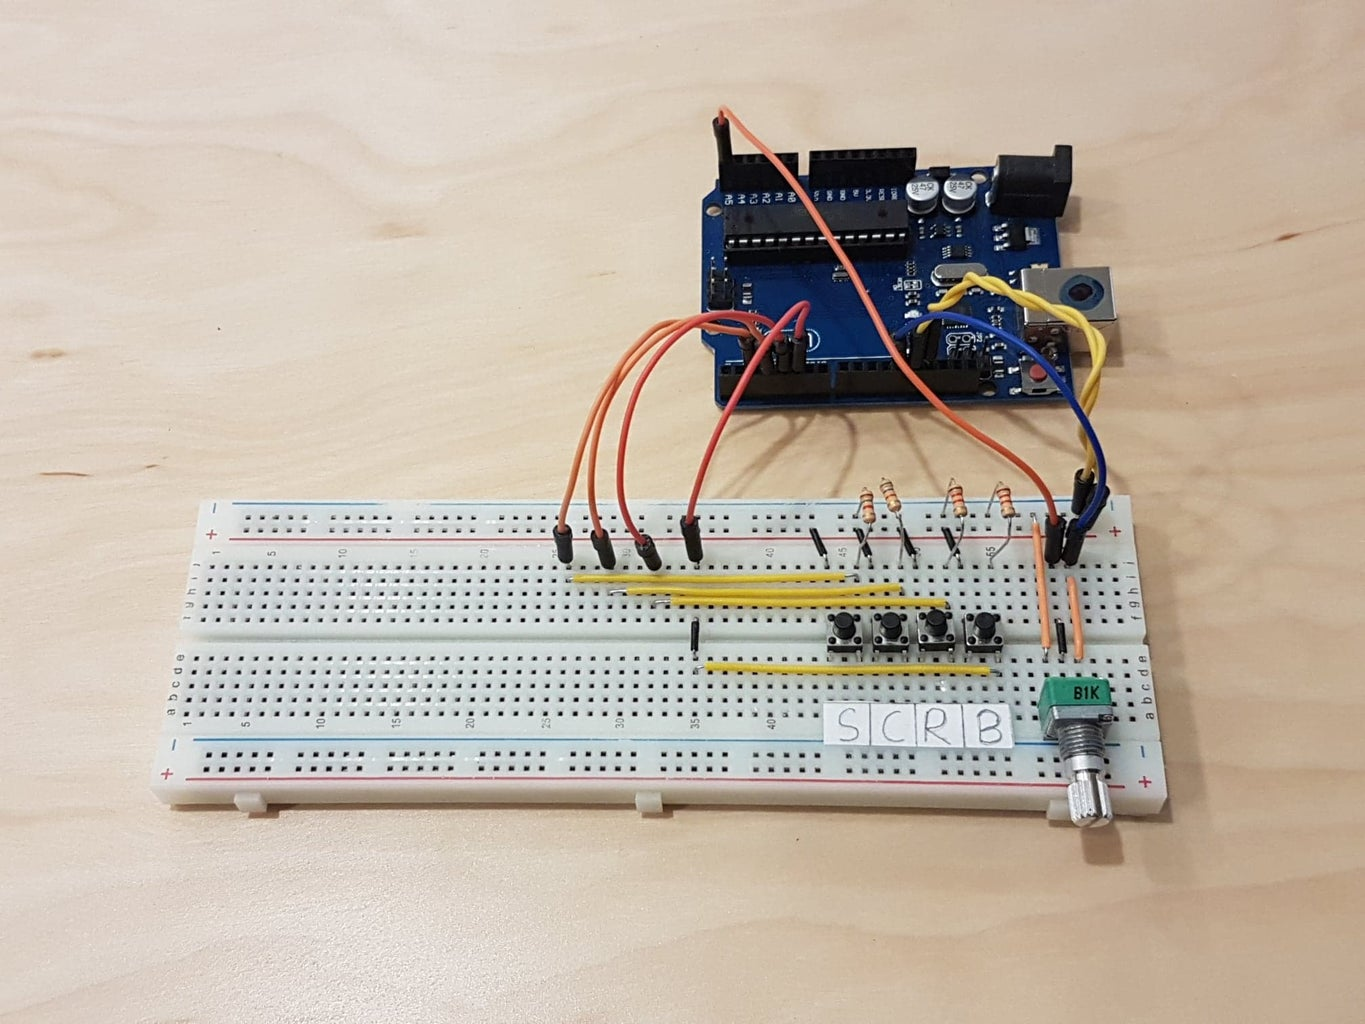 Wiring Up the Breadboard